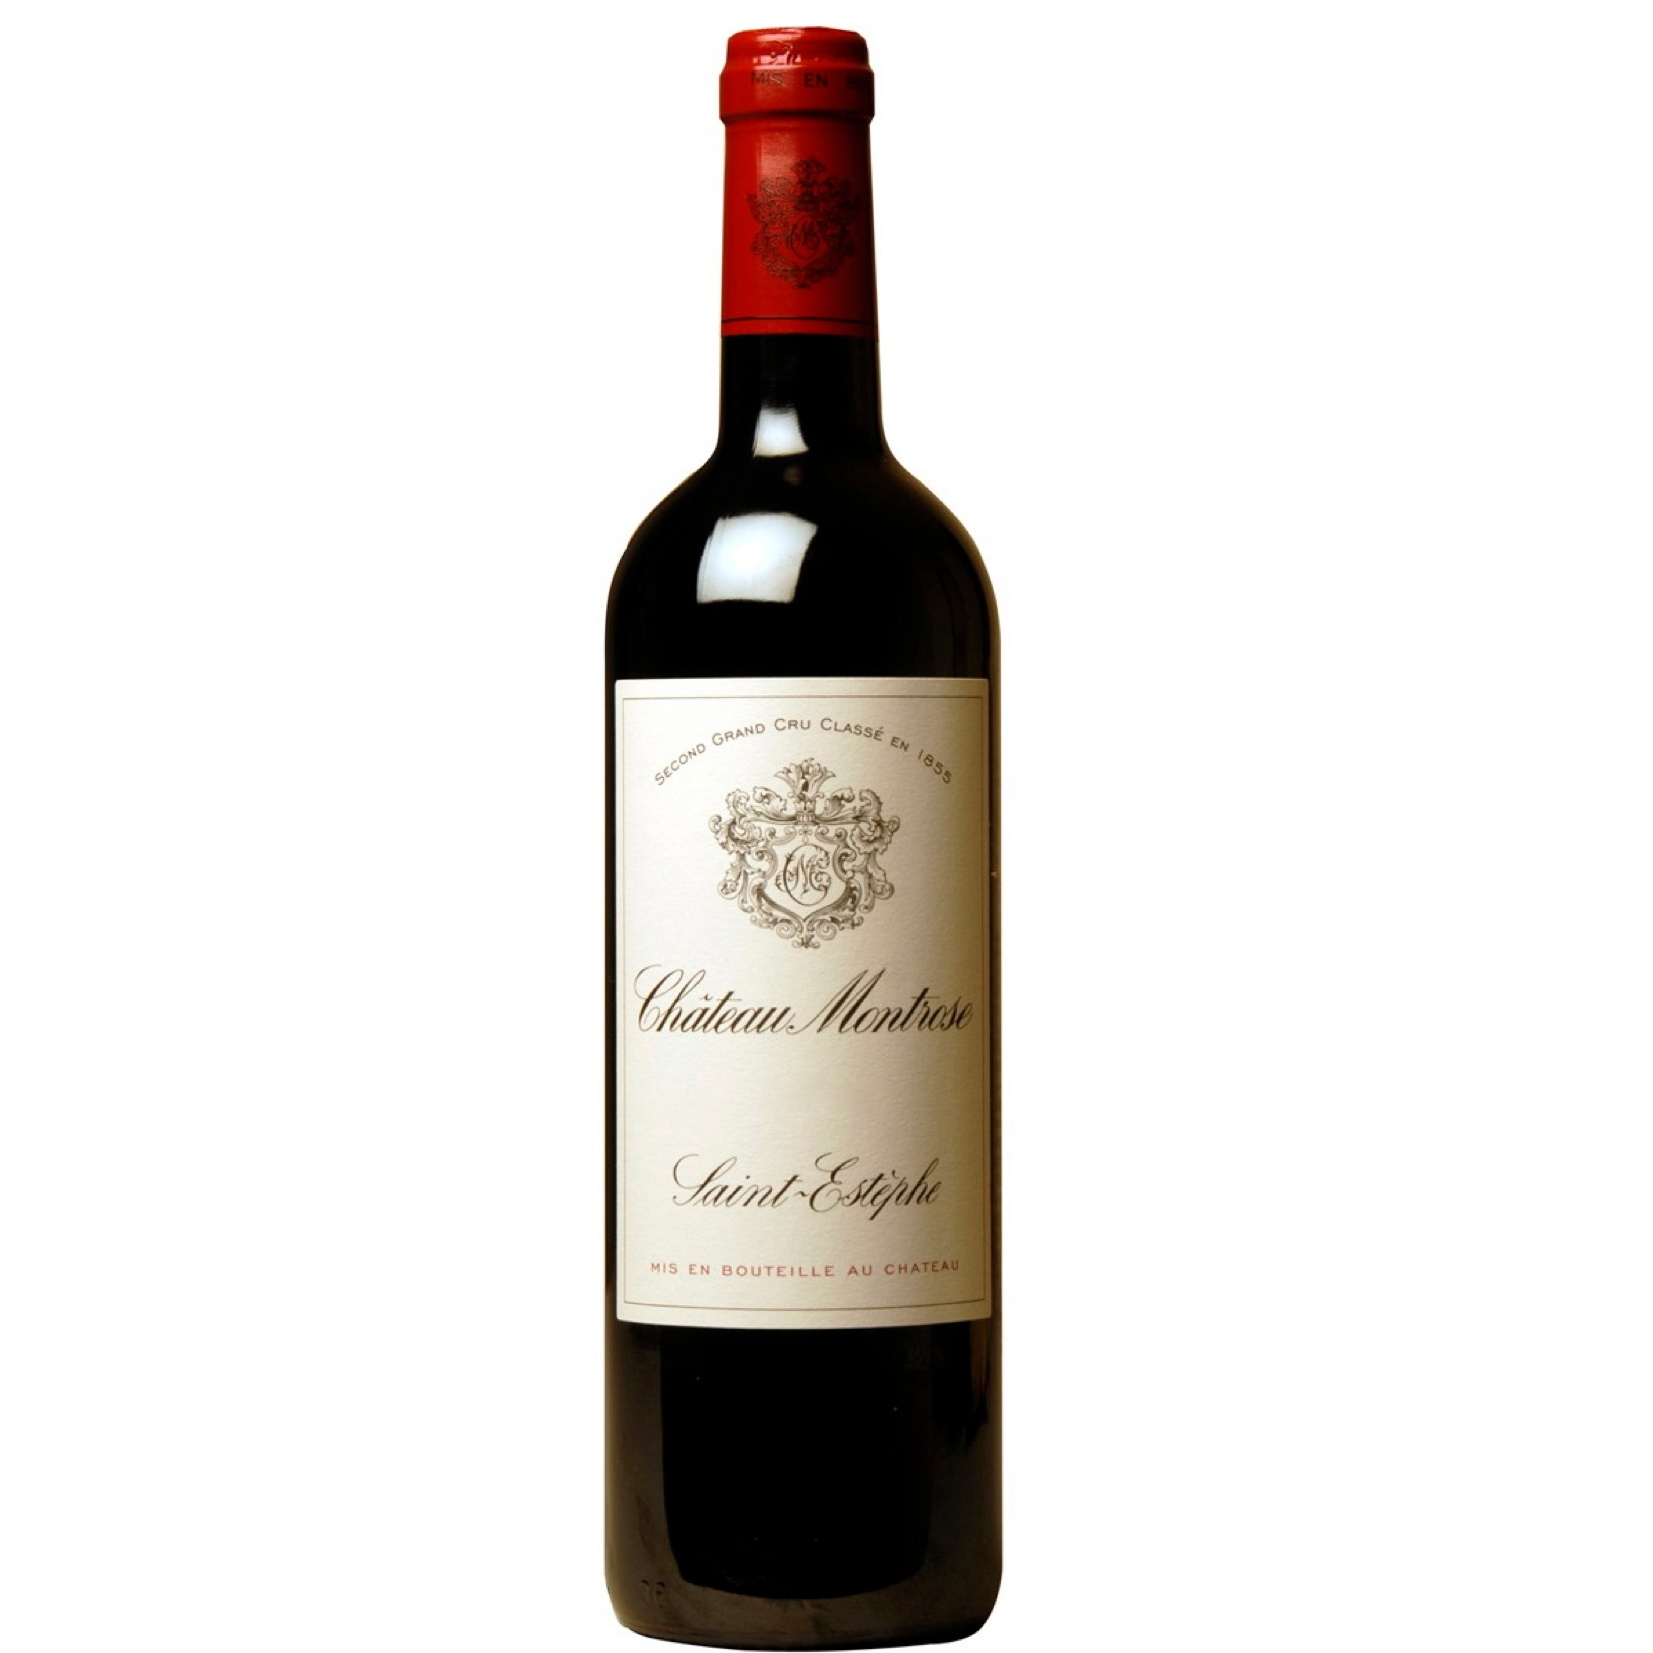 Chateau montrose ap wine imports for Chateau montrose